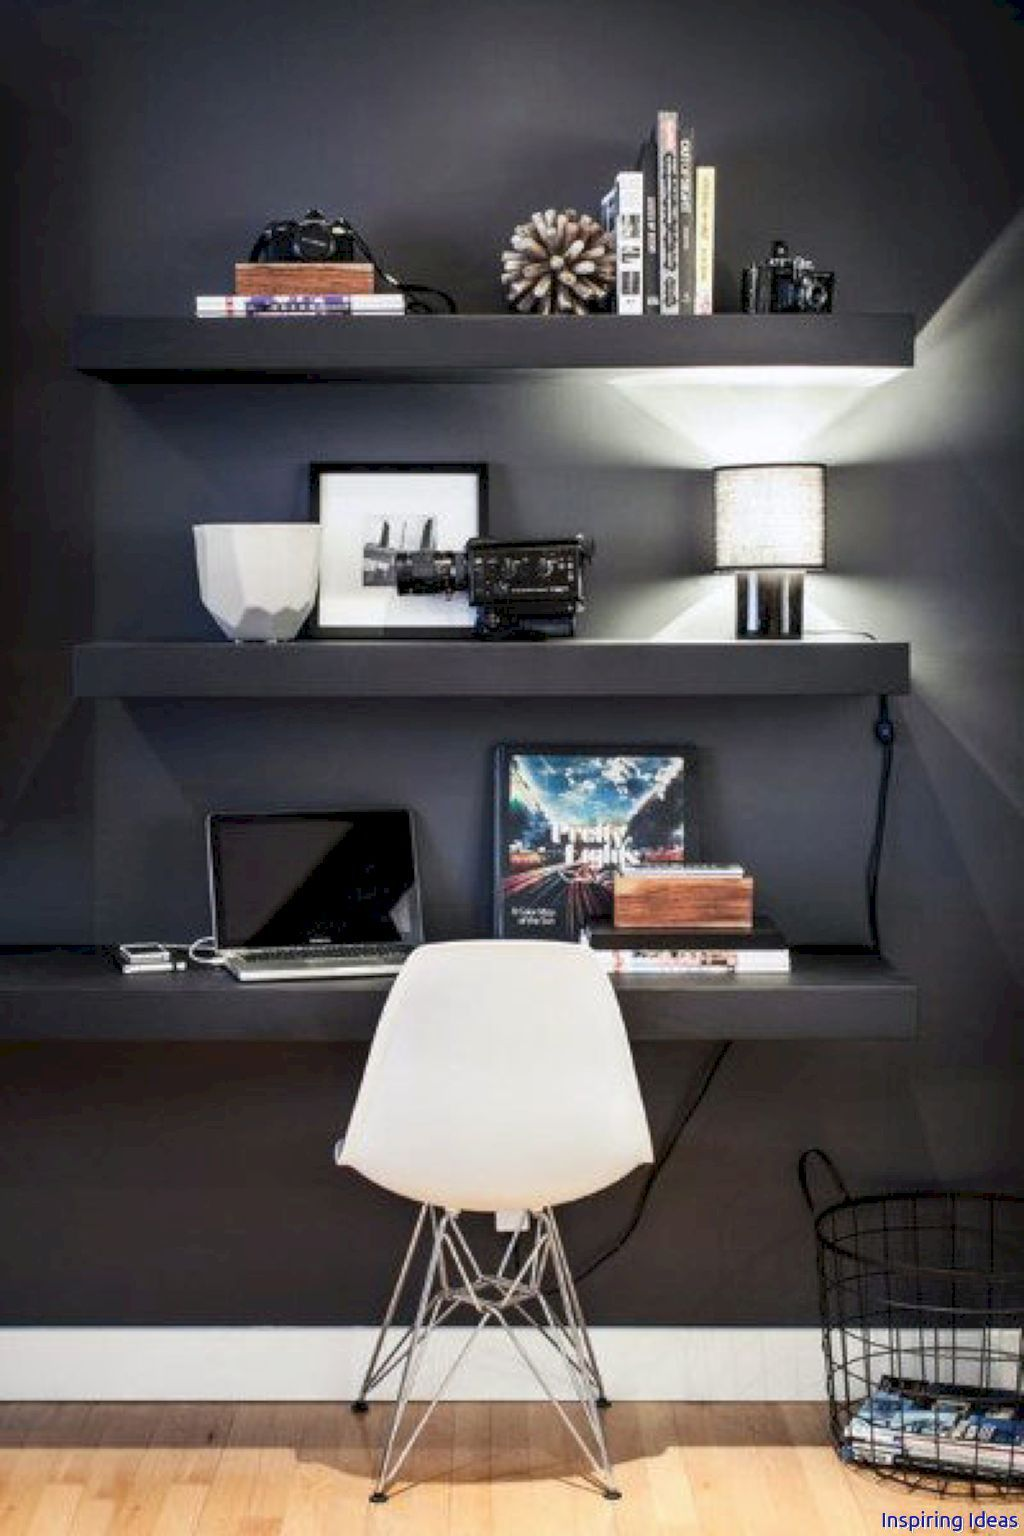 Awesome 47 Great Apartment Decorating Ideas for Men ://lovelyving.com/ & Awesome 47 Great Apartment Decorating Ideas for Men https ...